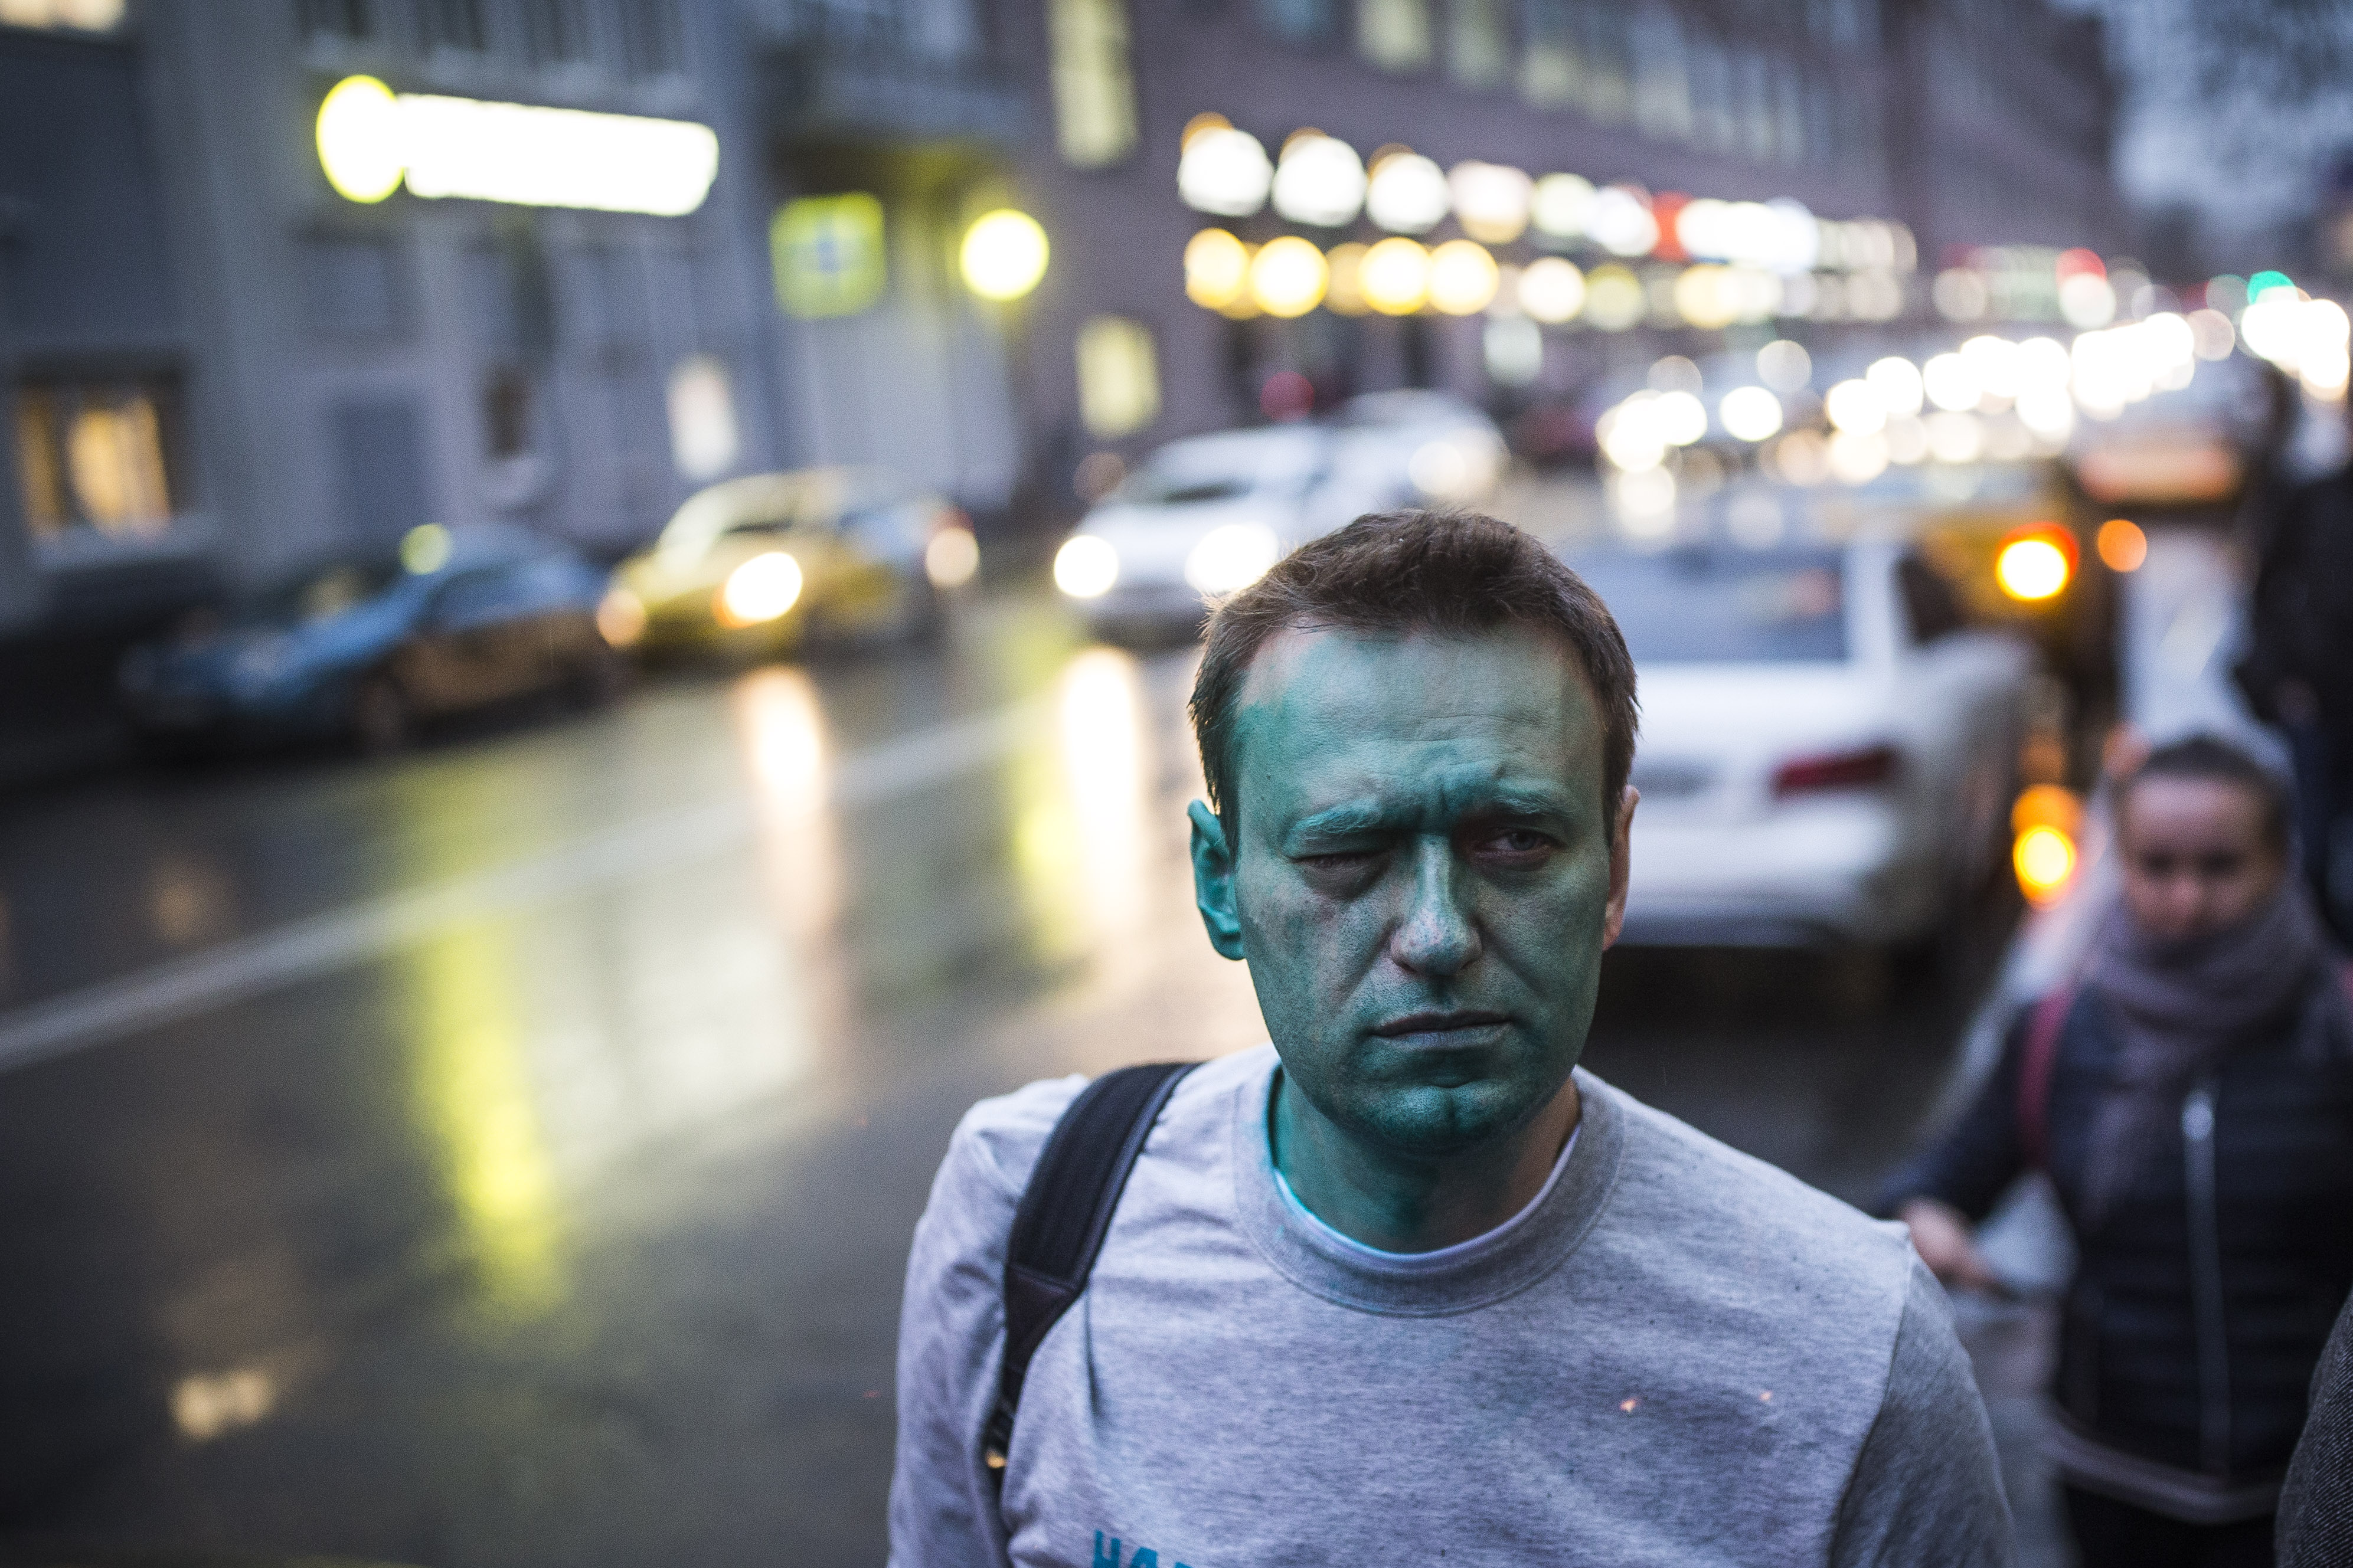 UPDATE 1-Russia carries out mass raids on Kremlin critic Navalny's supporters